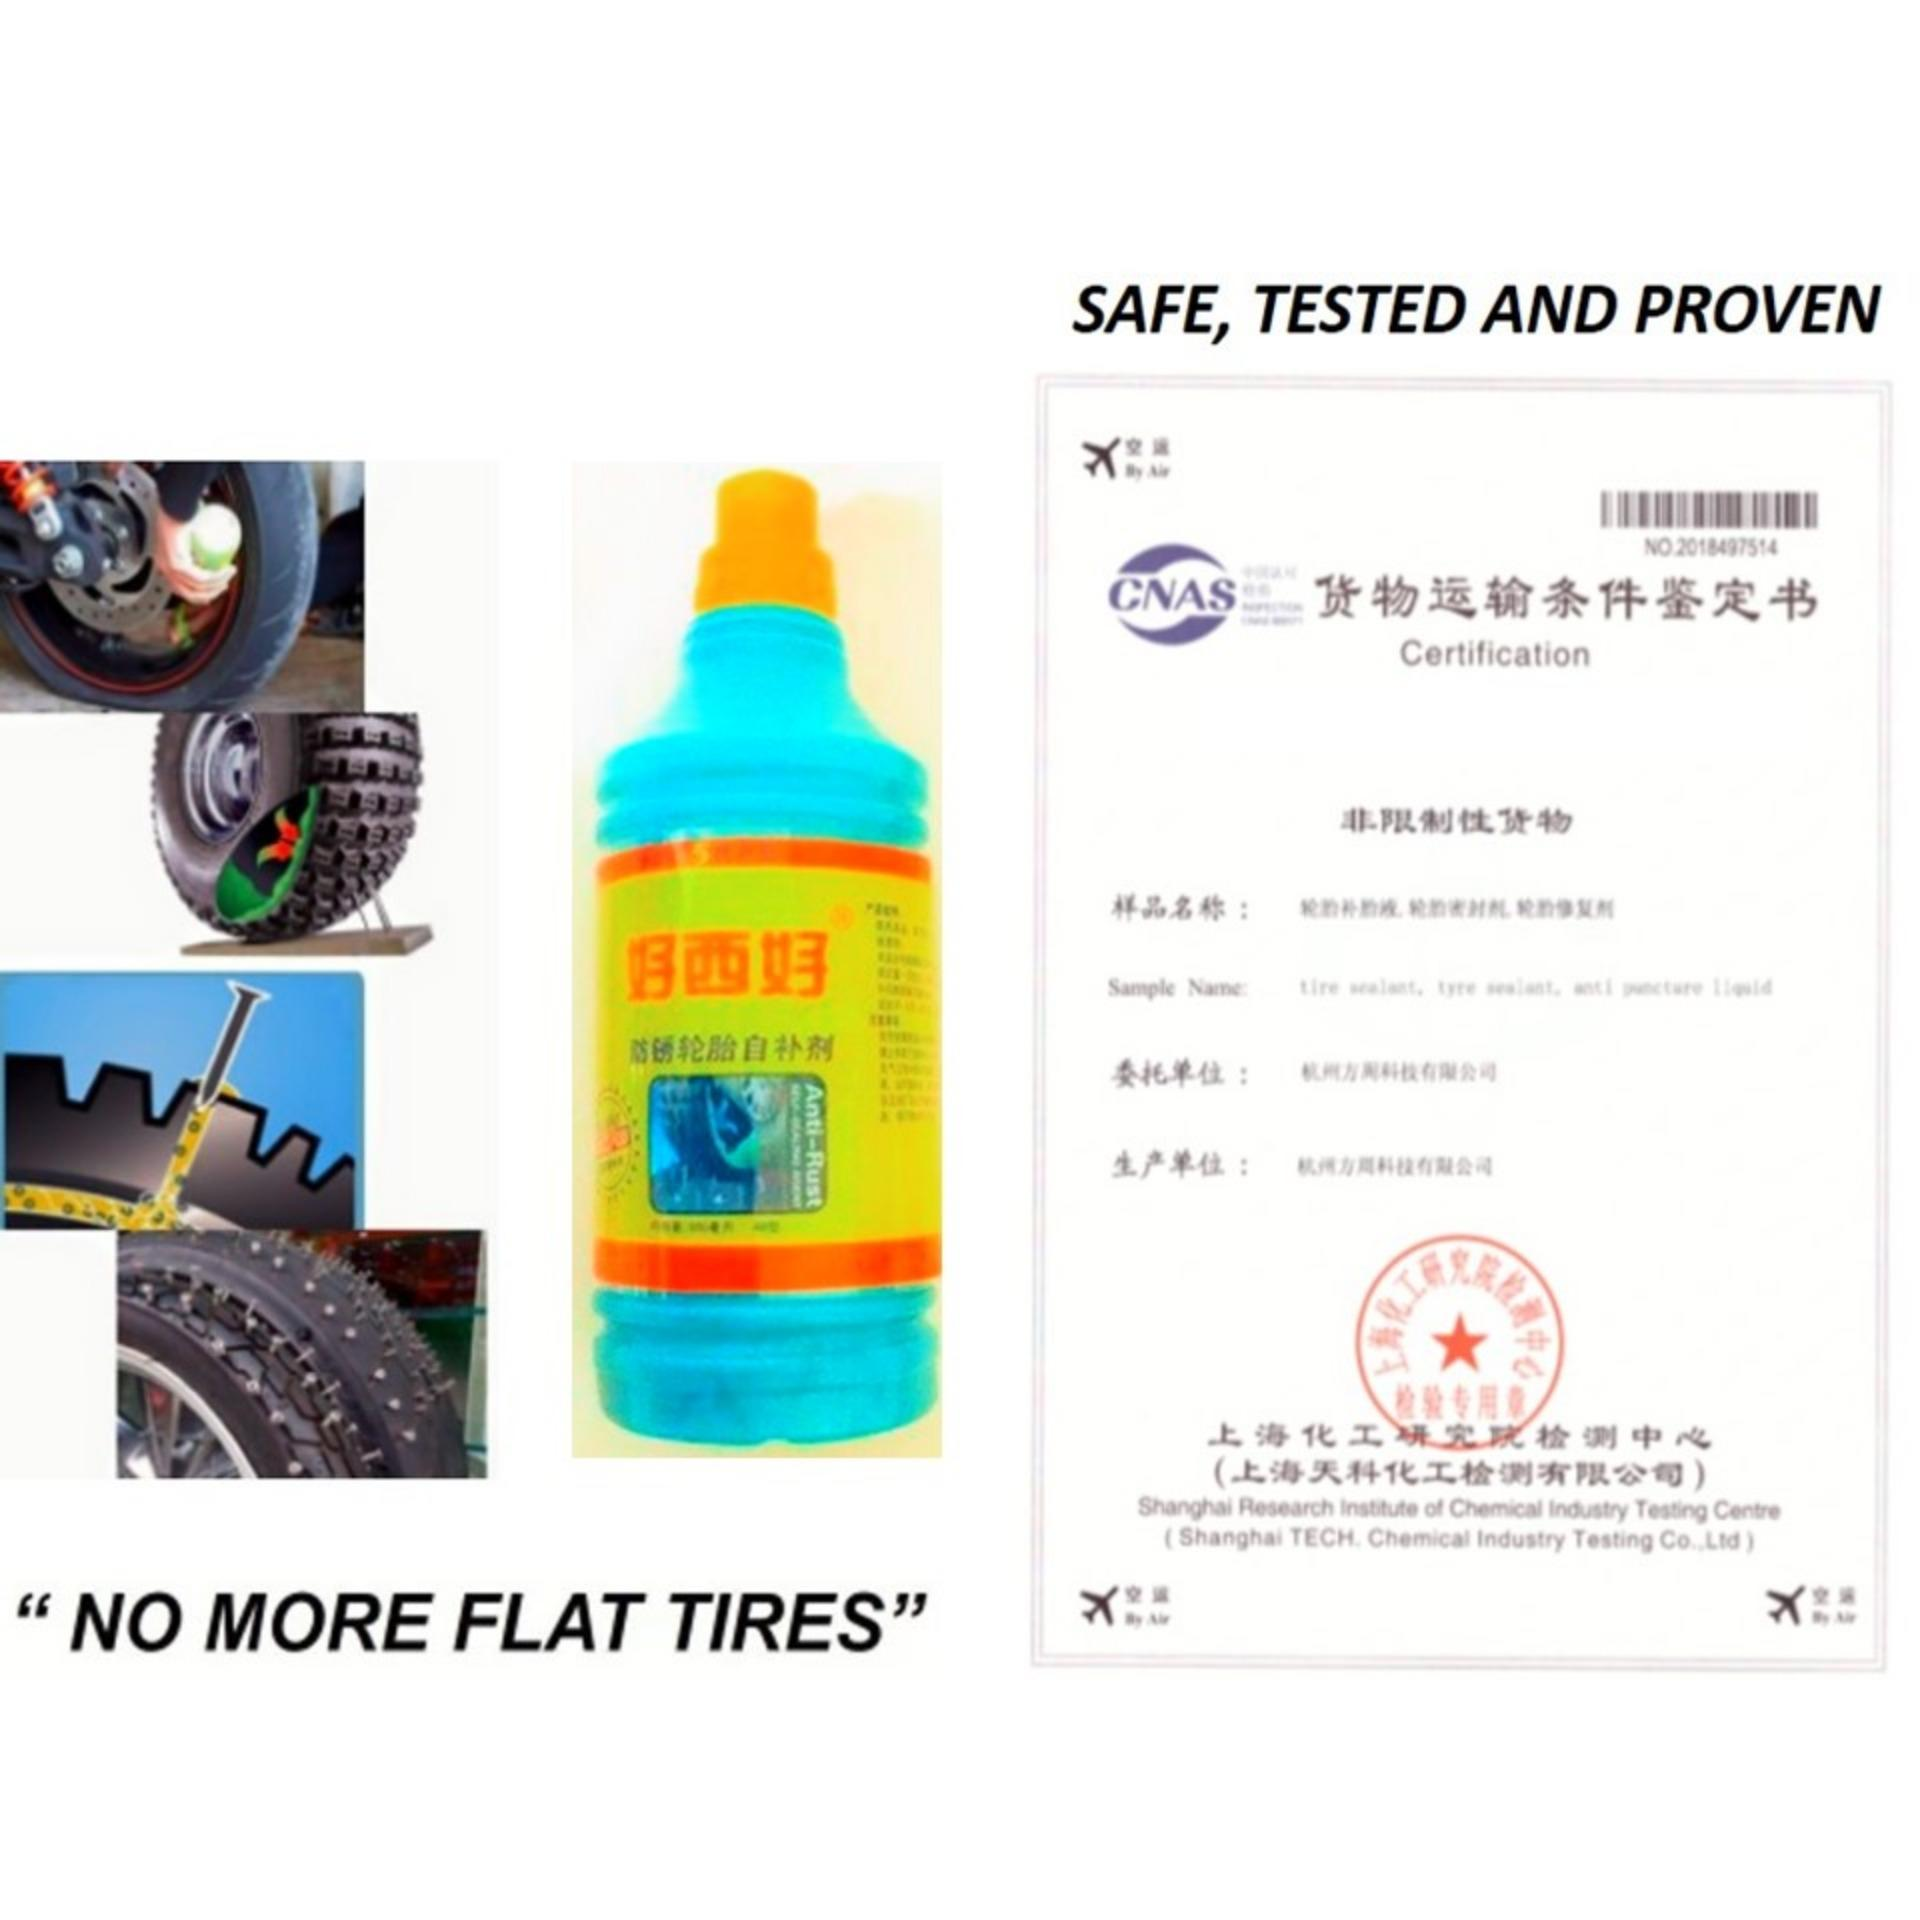 2pcs 500 Ml Car / Motor Tyre Tire Sealant  No More Flat Tires Proven & Tested By Golden Fortune Corp..